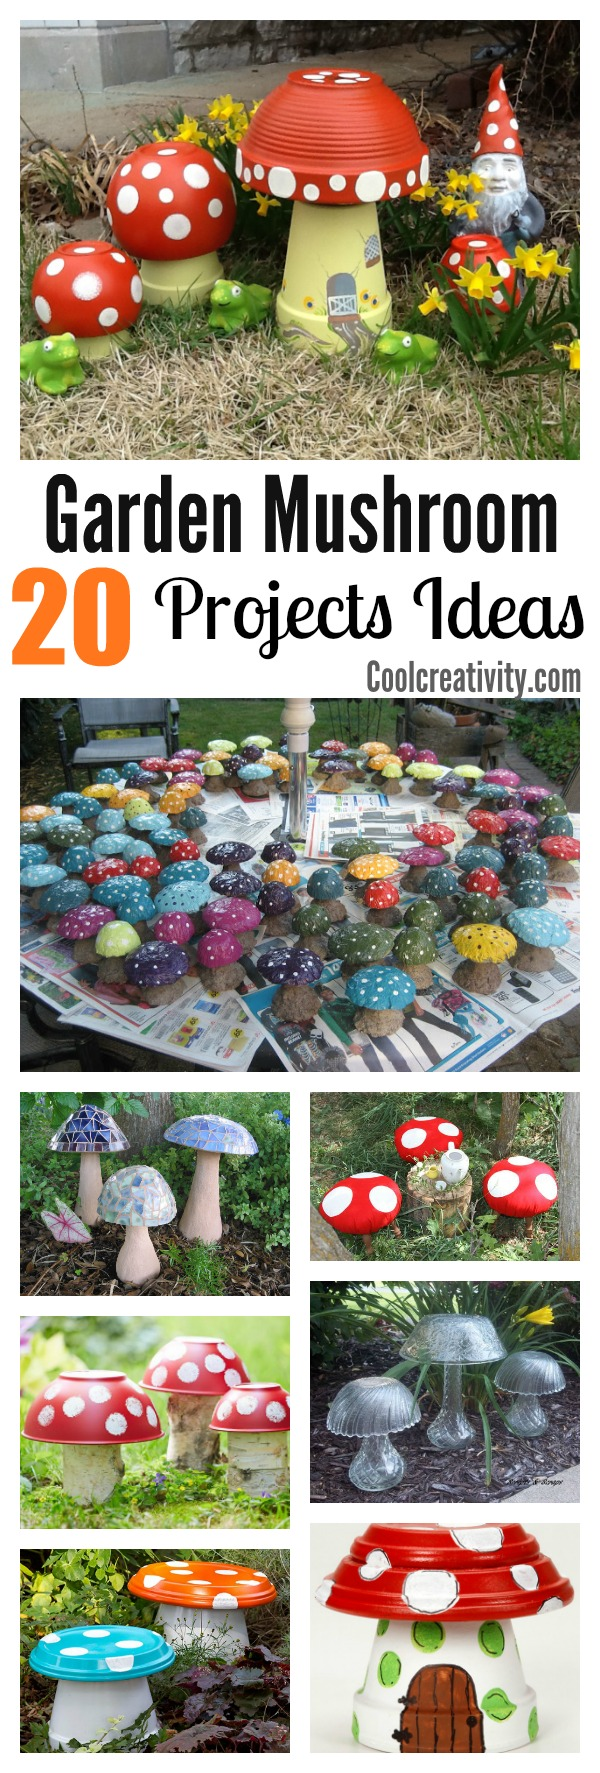 20 Garden Creative Mushroom Projects